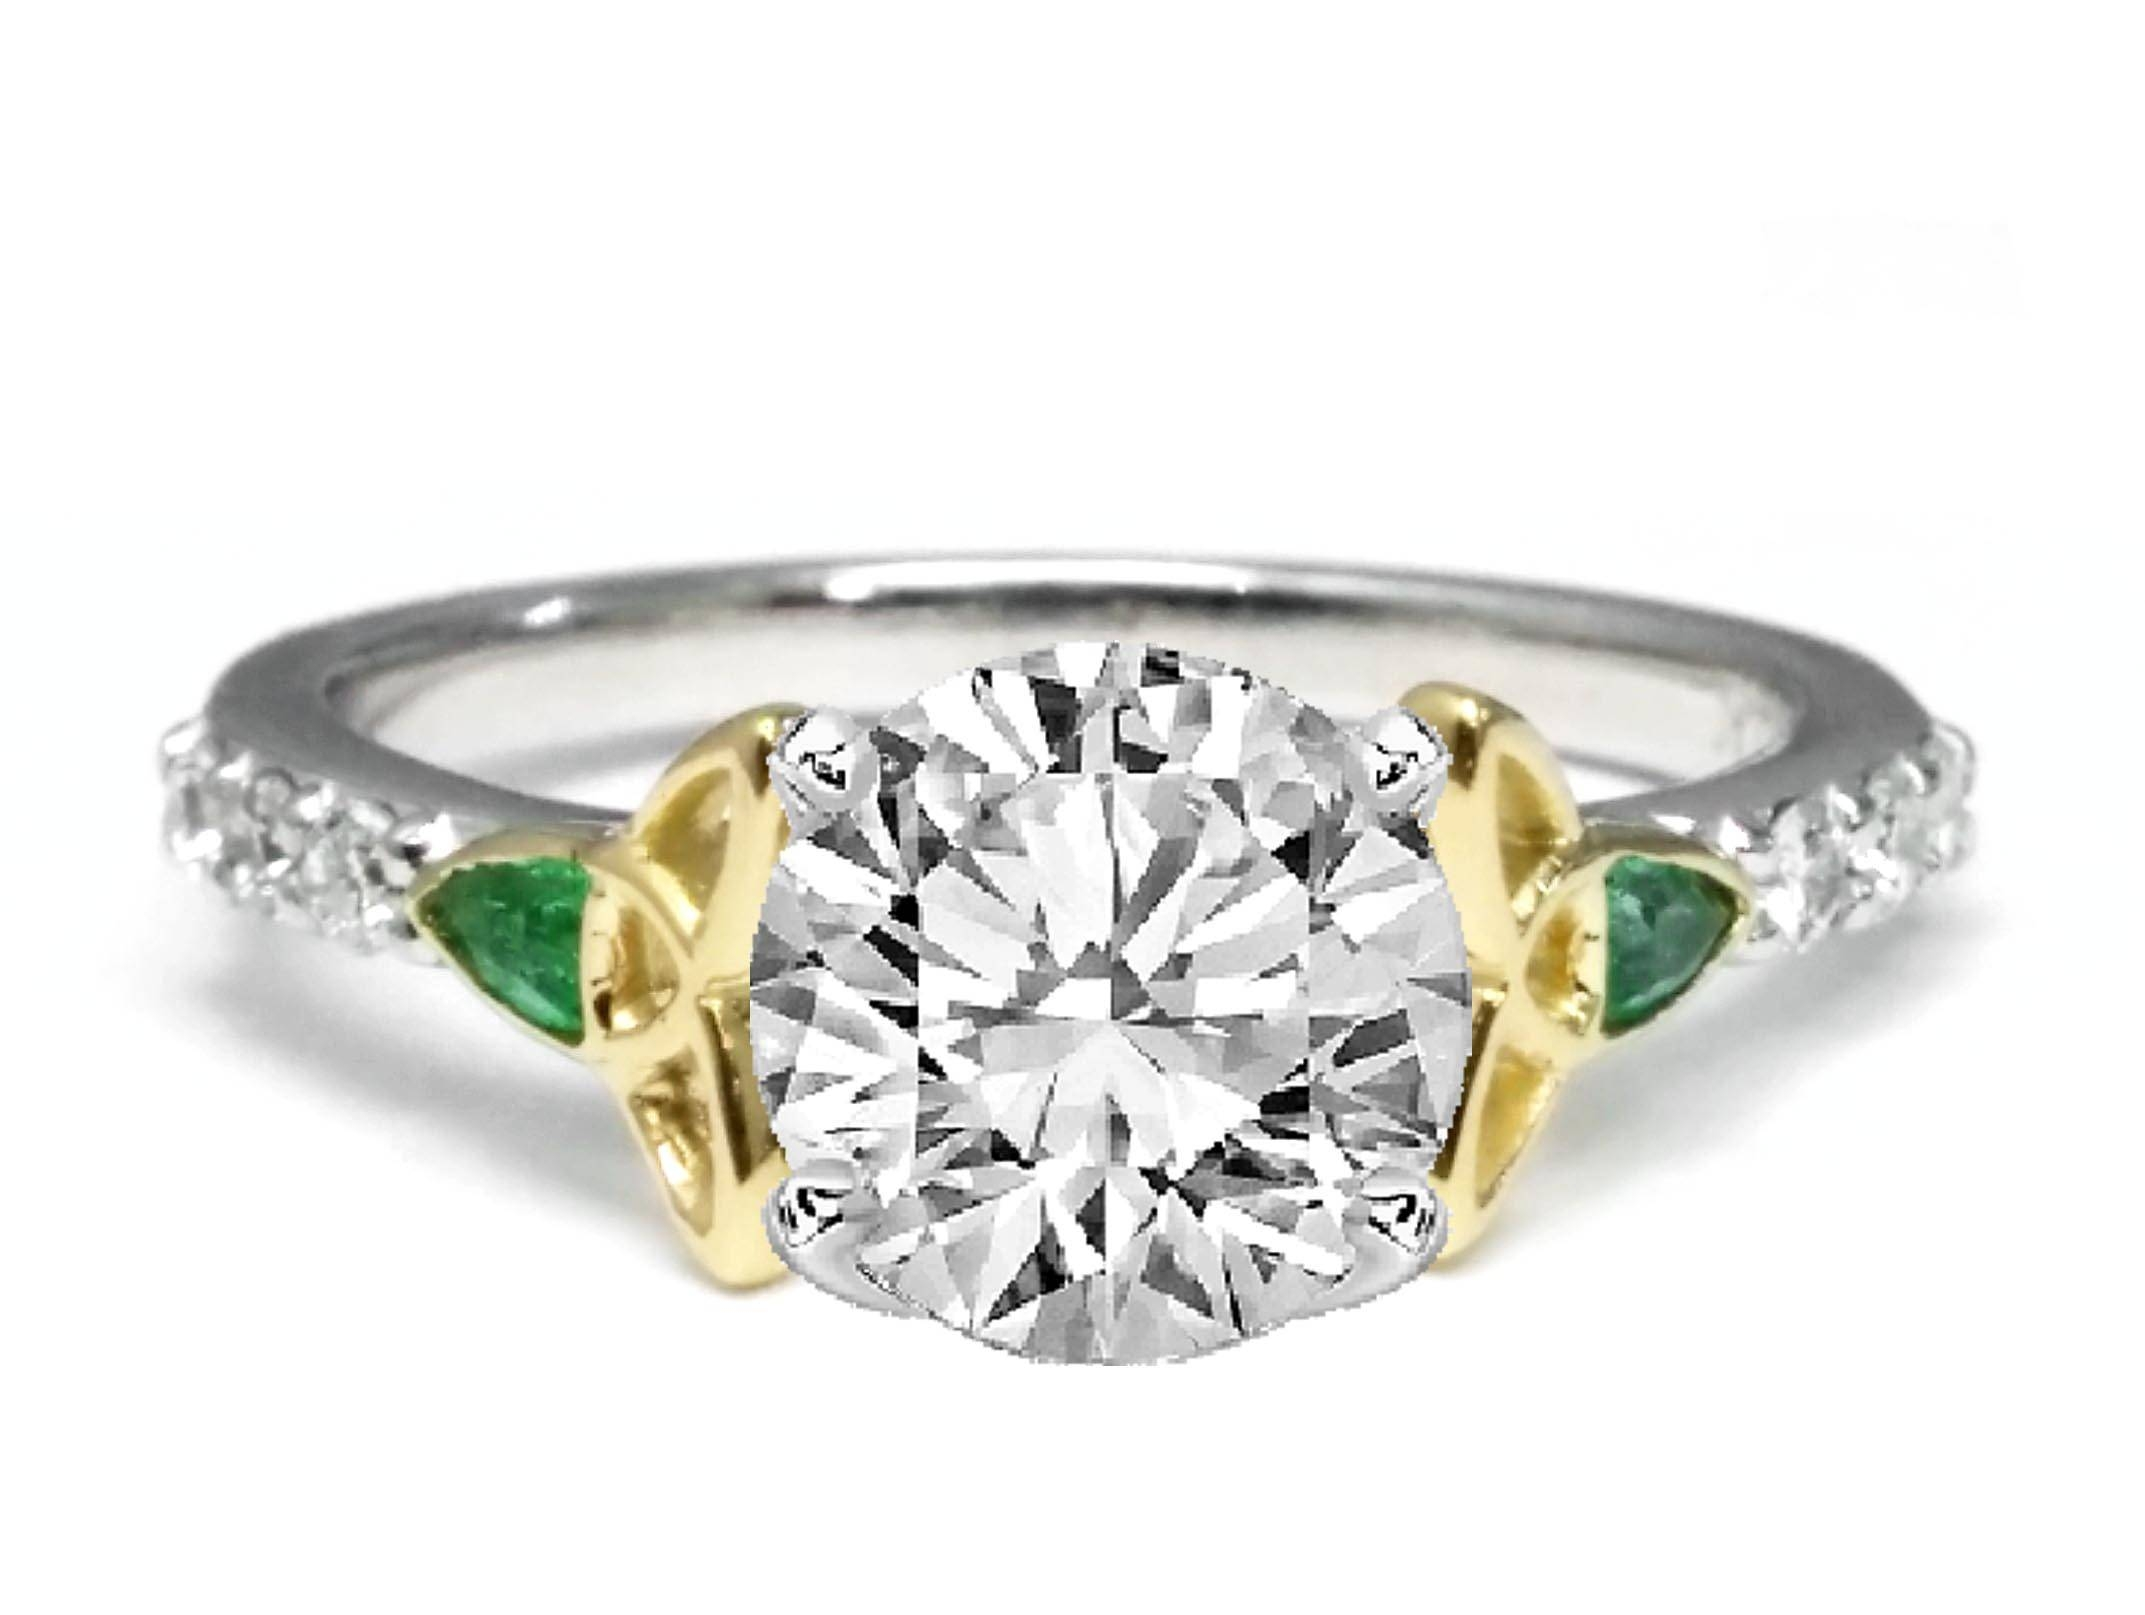 Celtic – Engagement Rings From Mdc Diamonds Nyc Pertaining To Celtic Engagement Ring Settings (View 4 of 15)